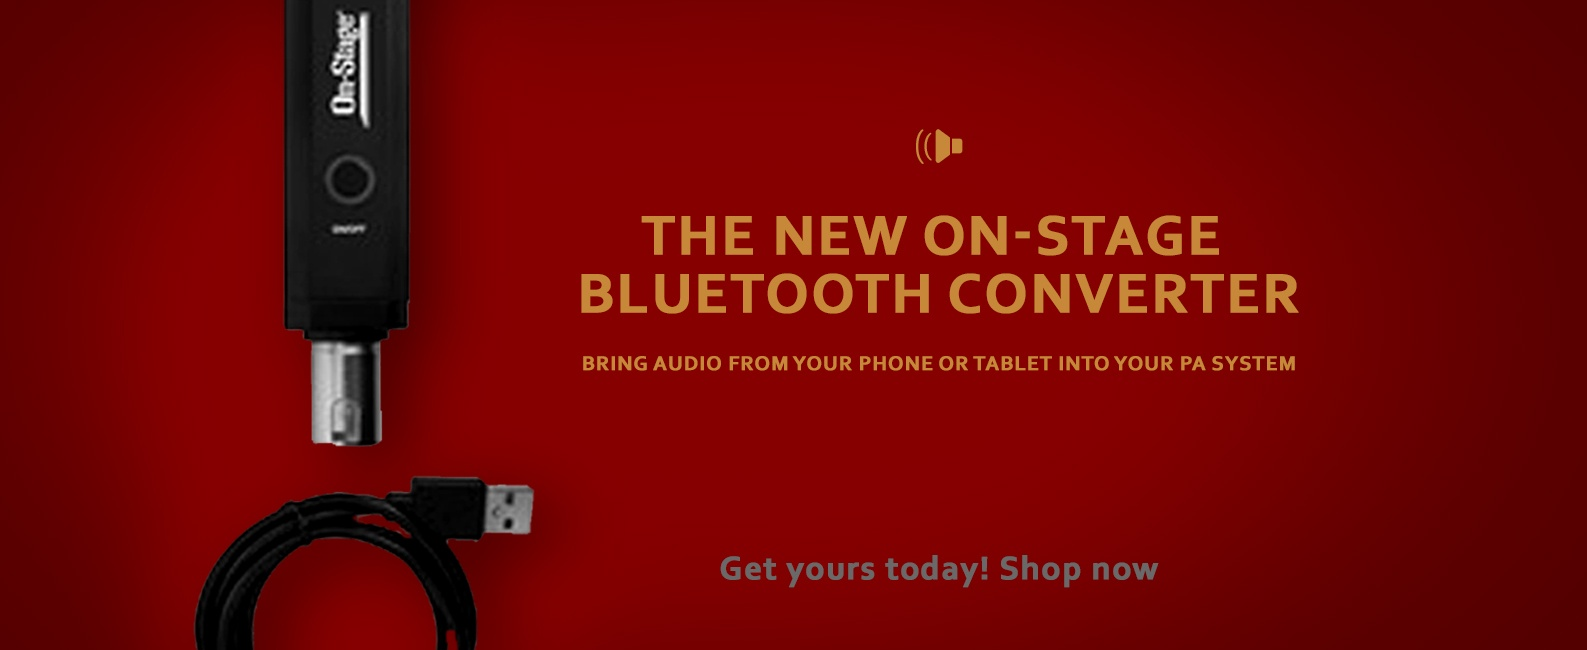 On-Stage Bluetooth Converter